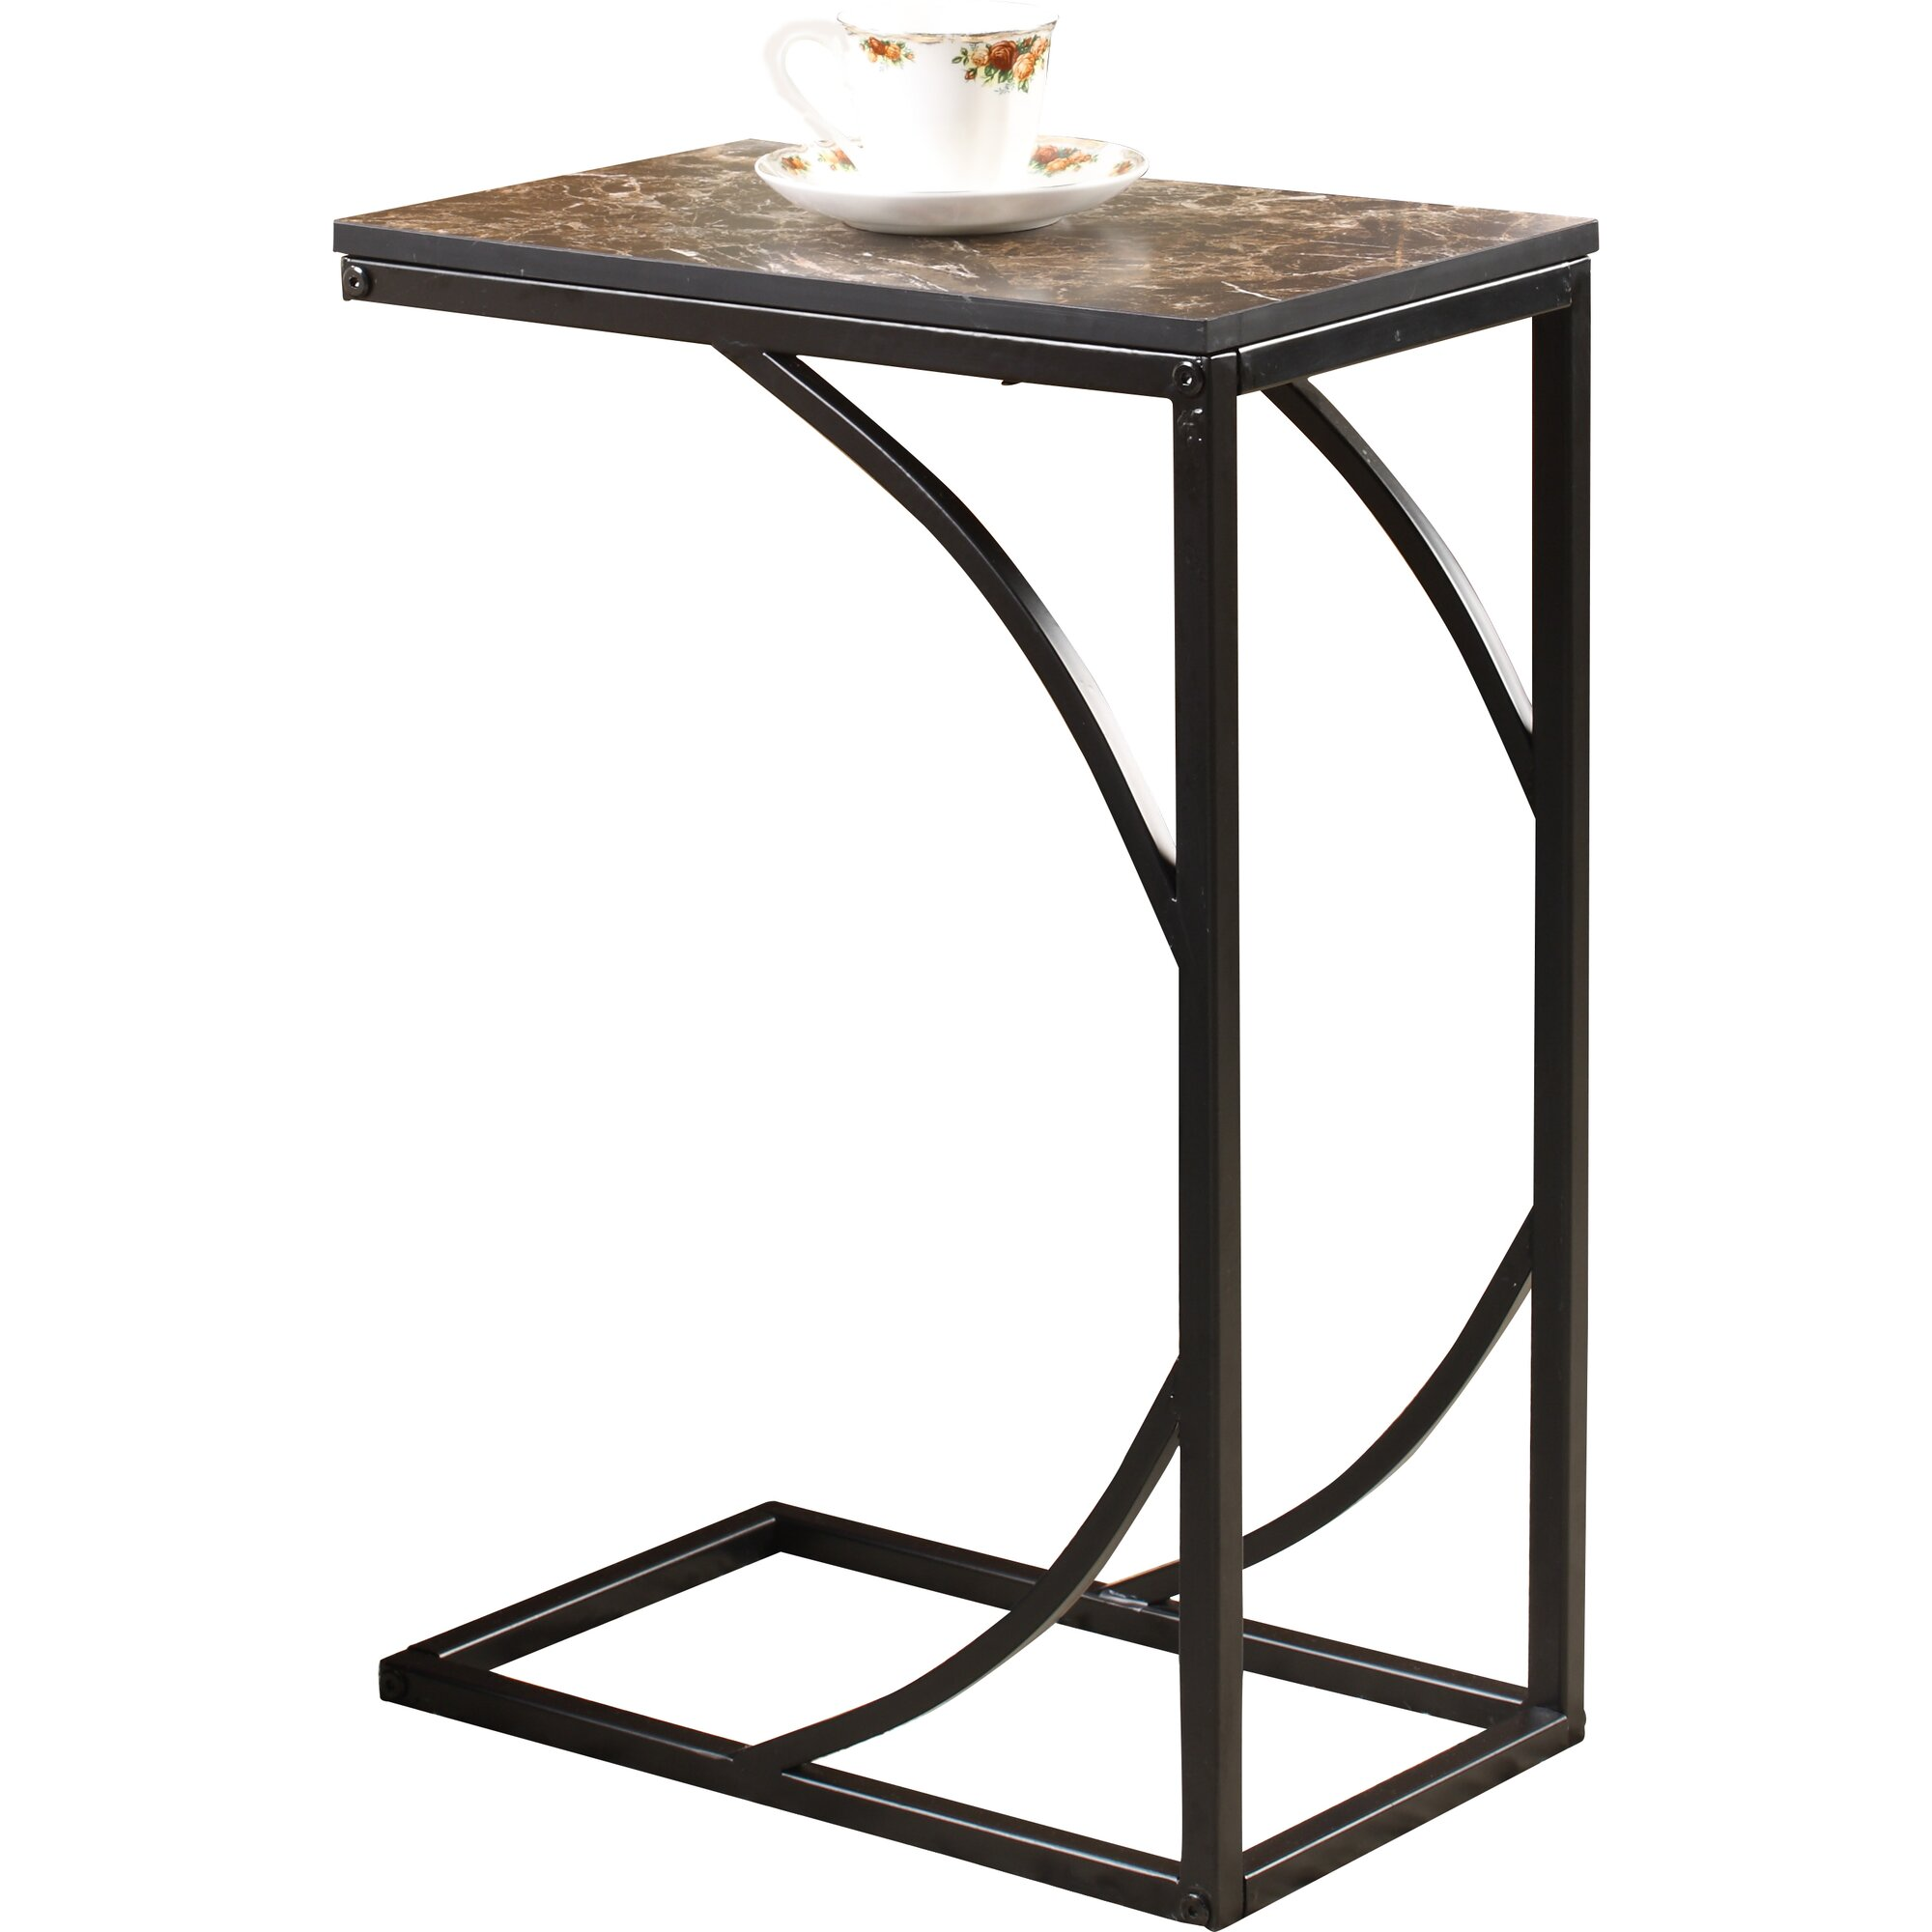 Inroom designs end table reviews wayfair for End table patterns